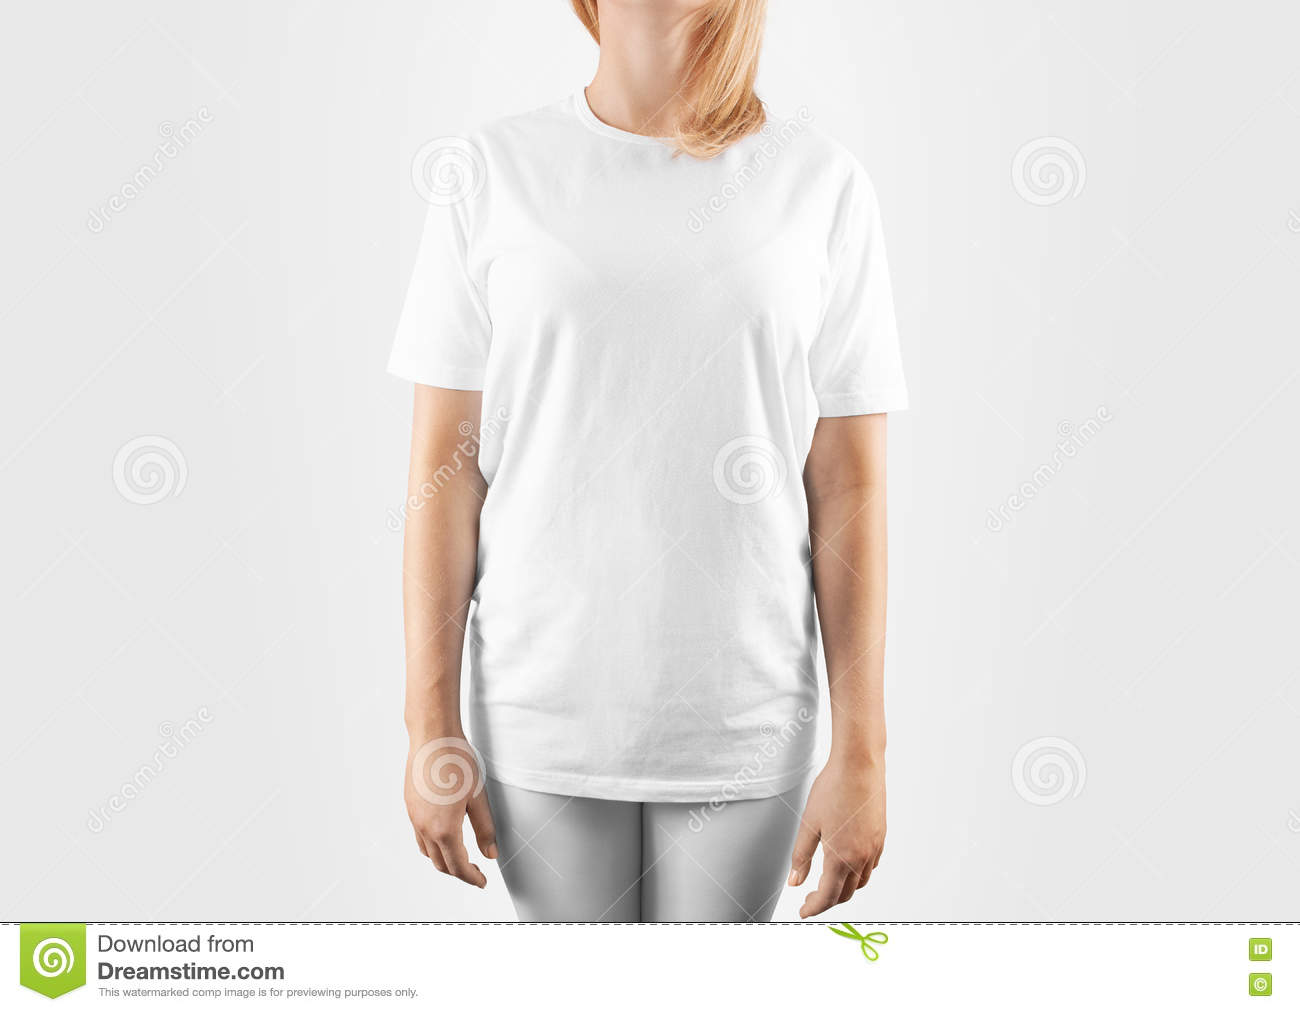 T shirt white mockup - Blank White T Shirt Design Mockup Clipping Path Stock Photo